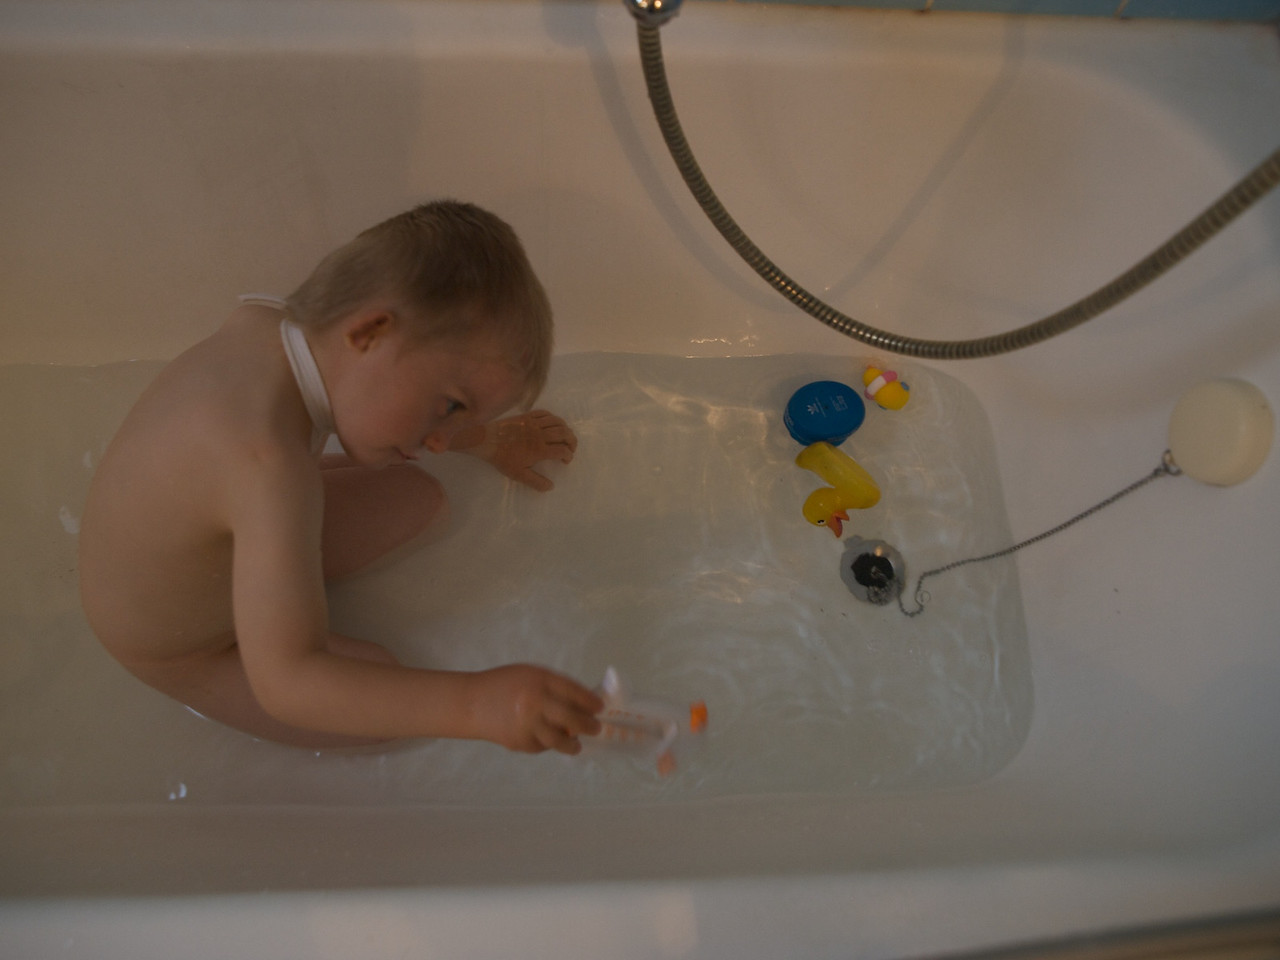 Sunday 19th July 2009 - Cai loves being in the bath and now wants one every day!